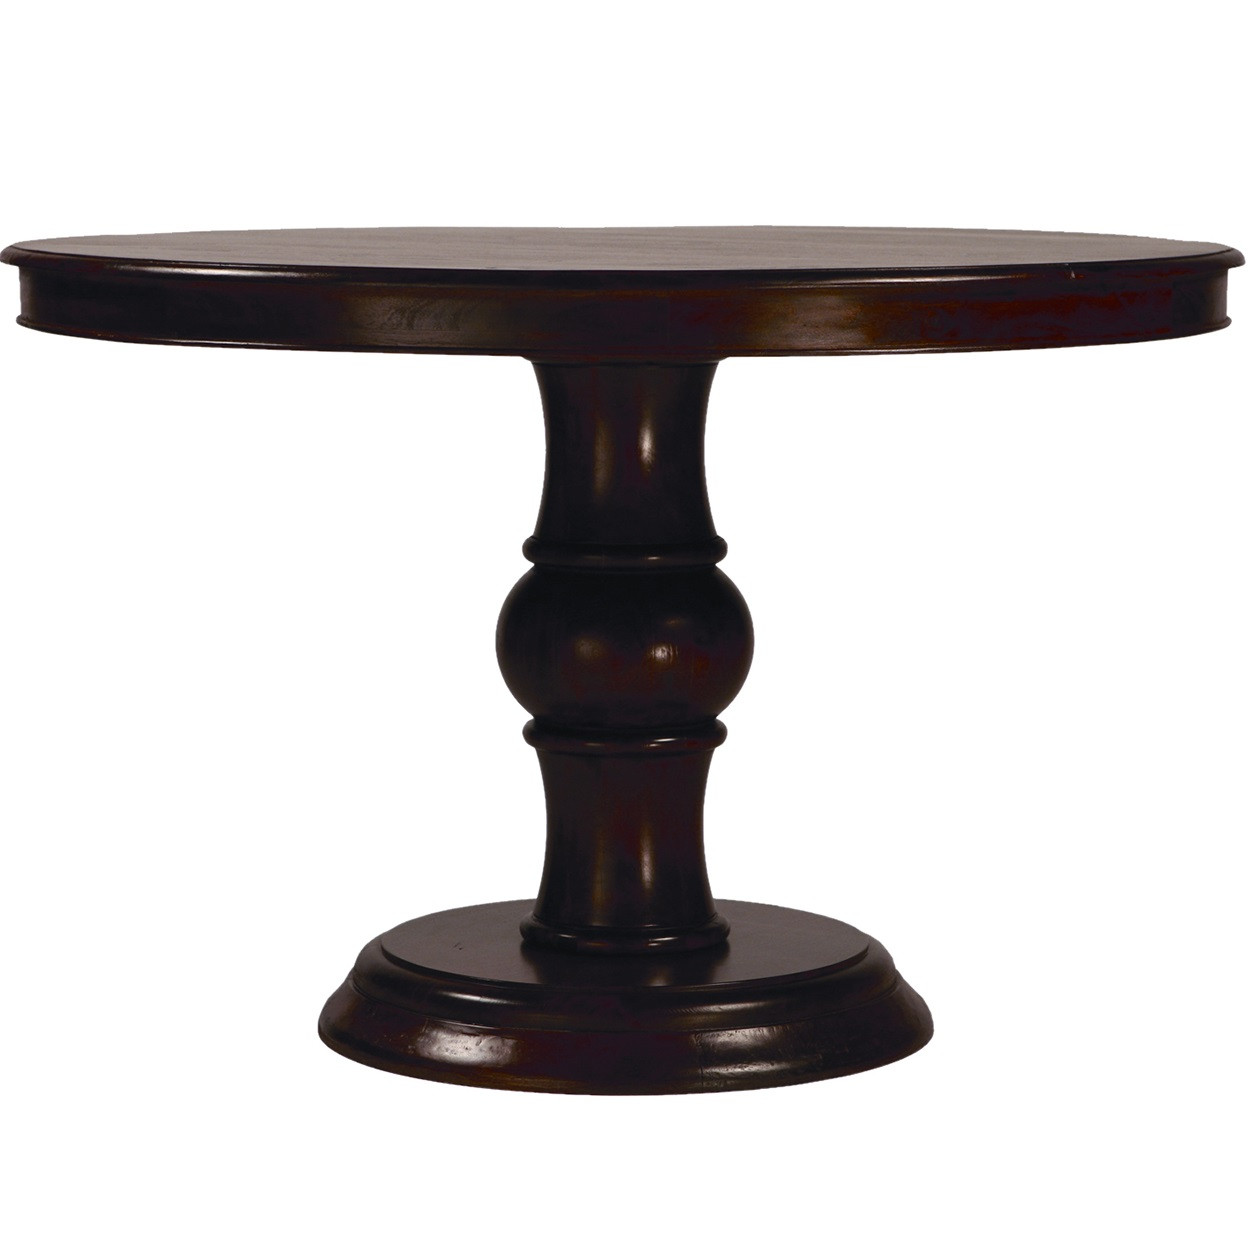 Lauren dark wood round pedestal dining table 47 zin home for Dark wood dining table